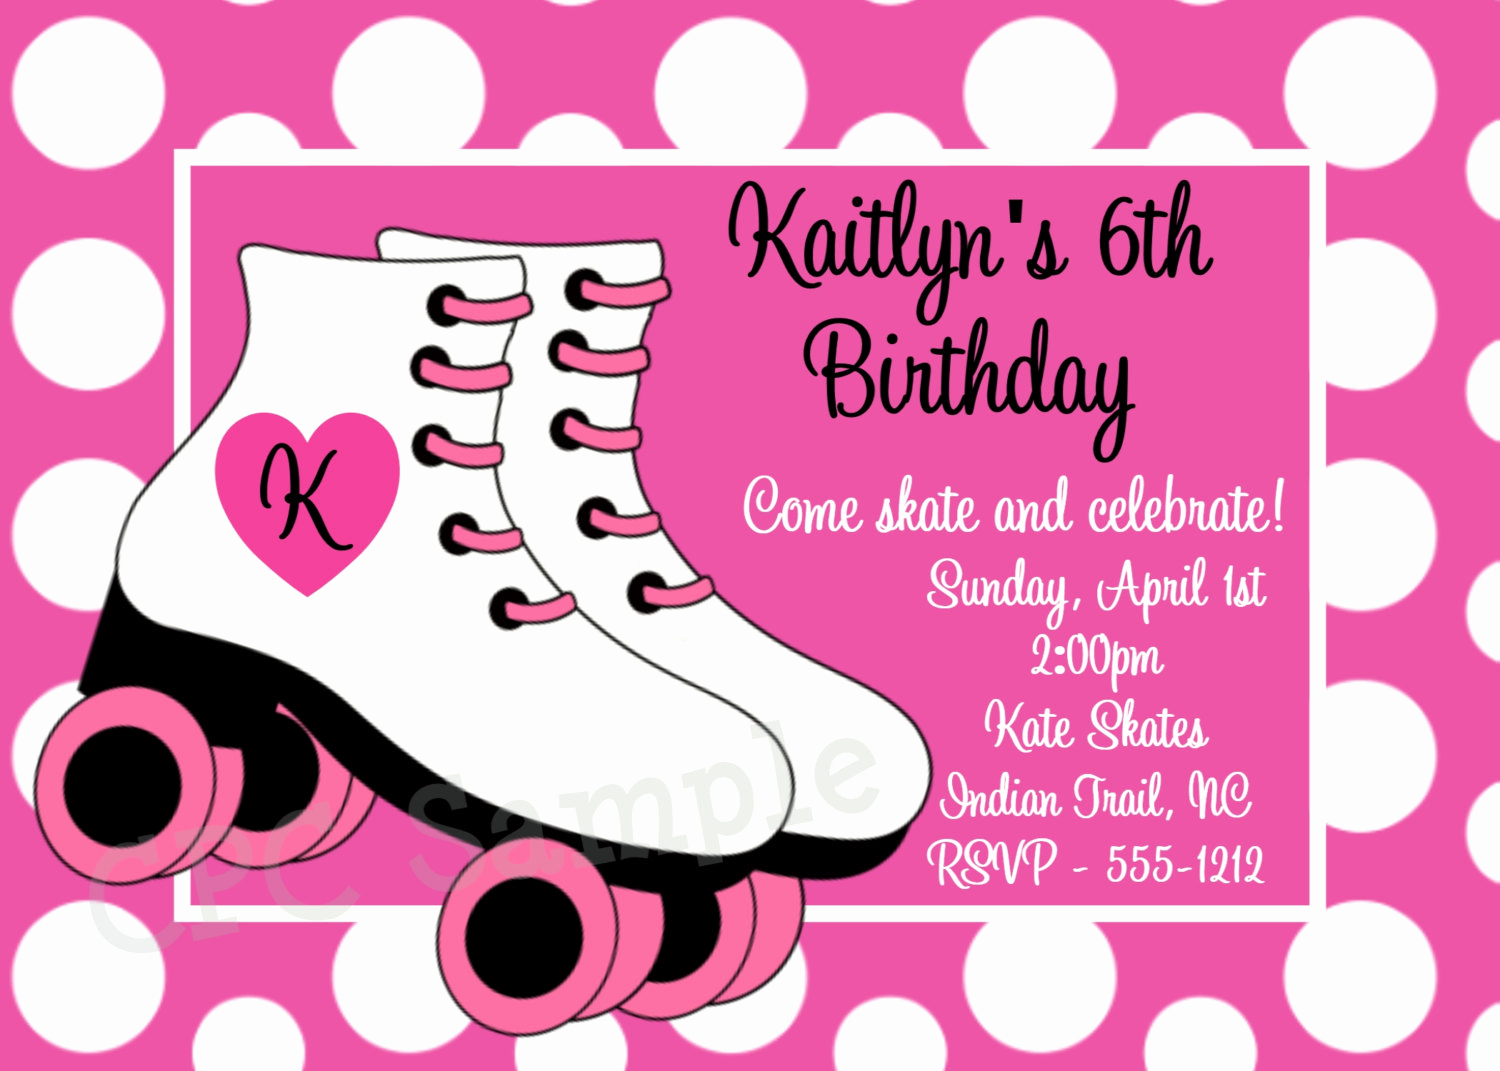 Roller Skate Invitation Template Best Of Free Printable Roller Skating Birthday Party Invitations